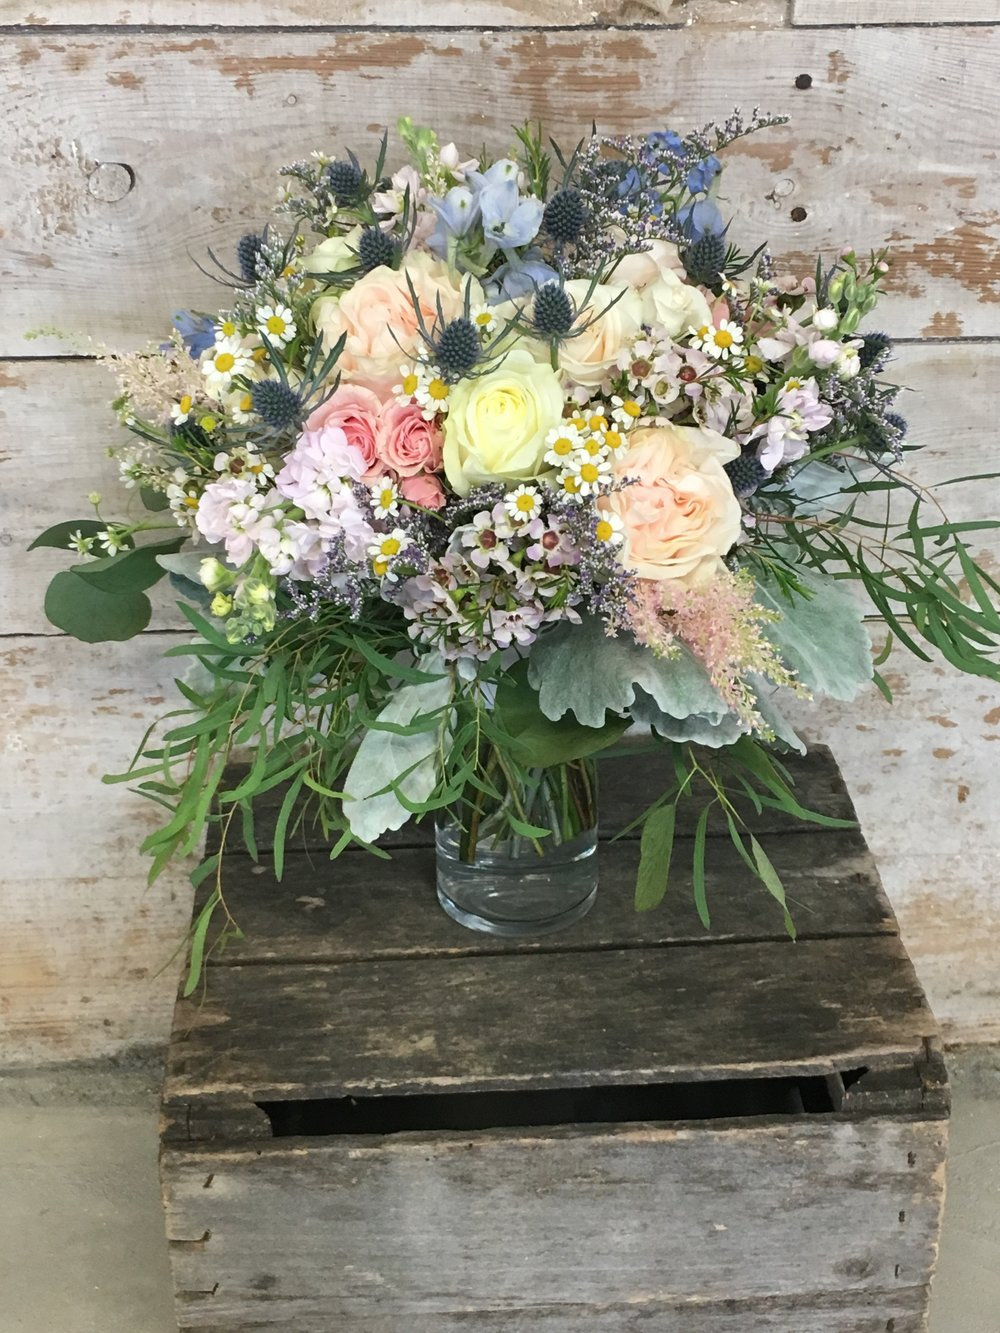 Garden roses, a variety of fillers, and a touch of whimsy eryngium (aka thistle) were perfect for a secret garden wedding theme!